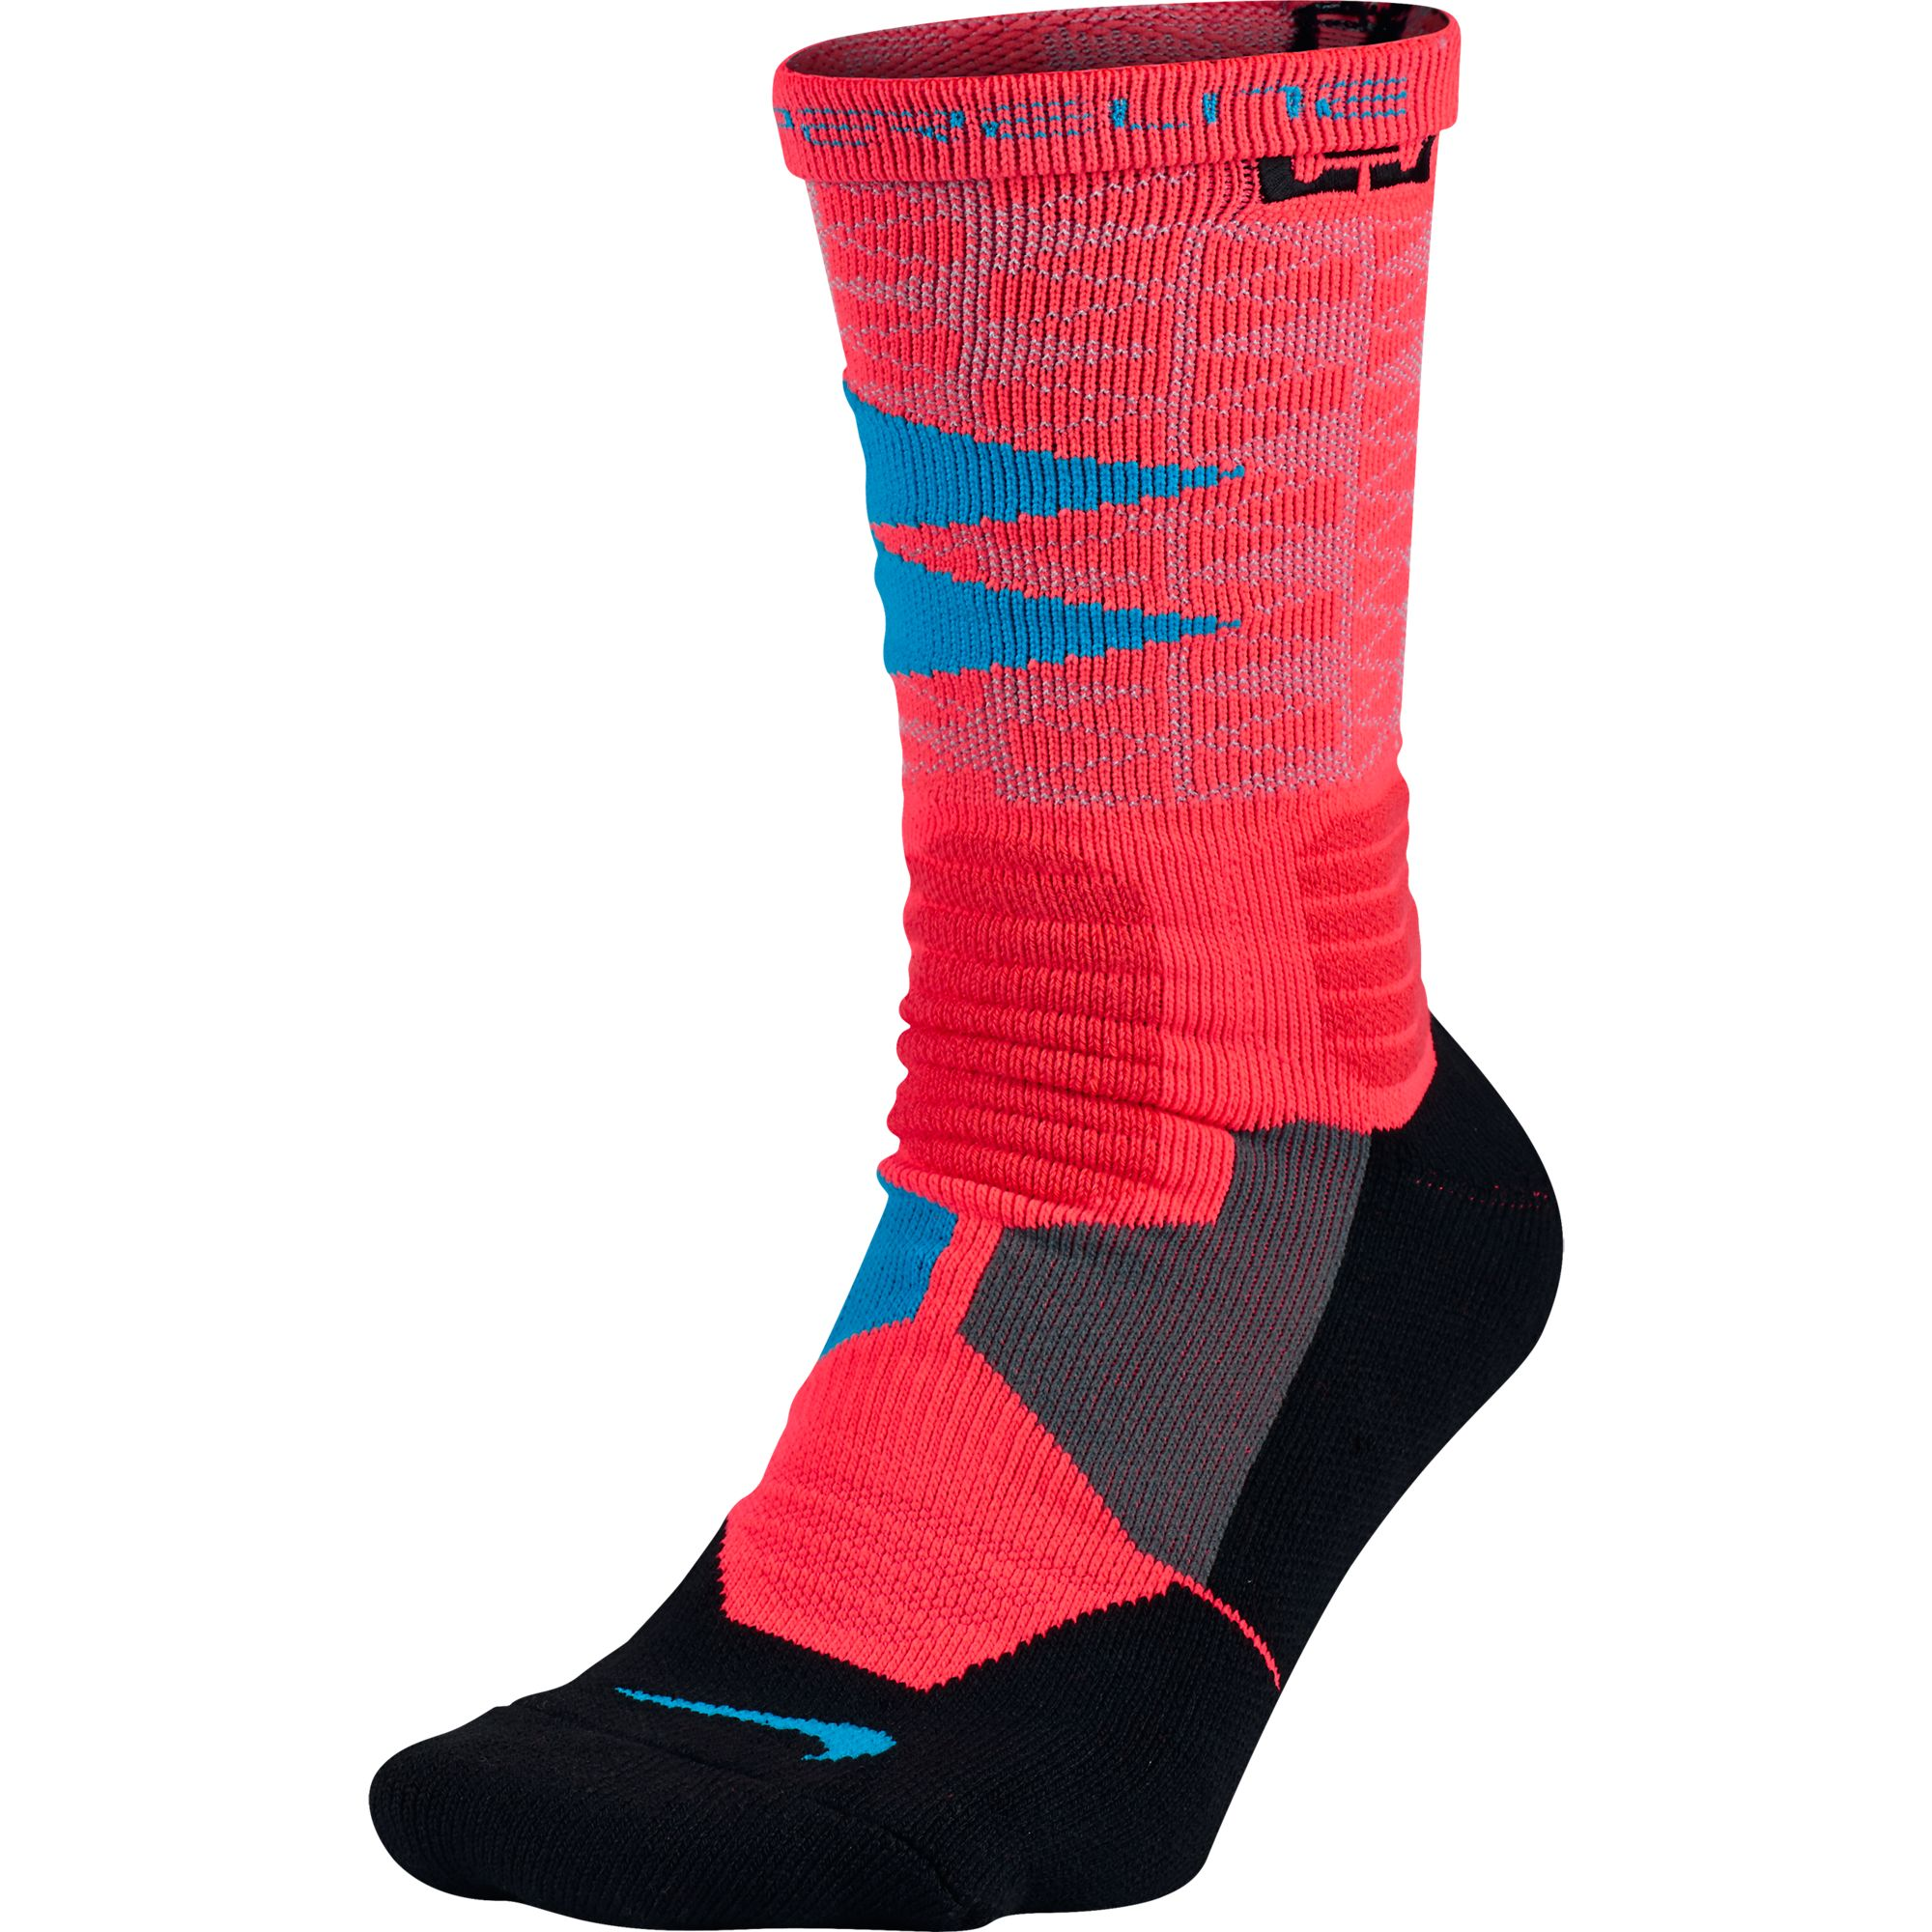 Nike Lebron Hyper Elite Men's Basketball Socks Bright Crimson/Black  sx5067-671